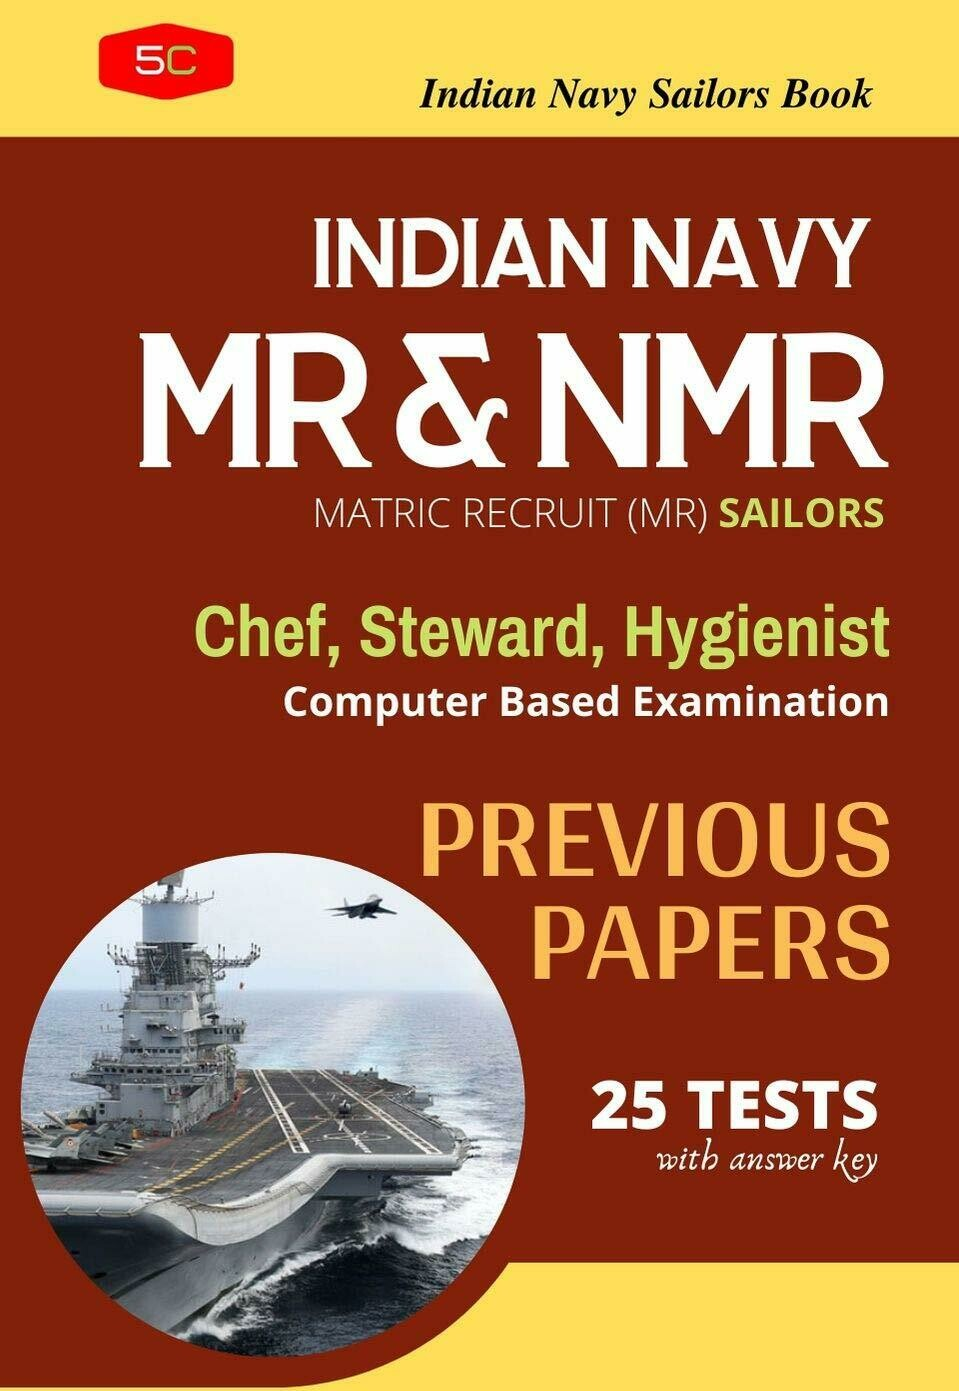 Indian Navy MR Sailors Previous Papers